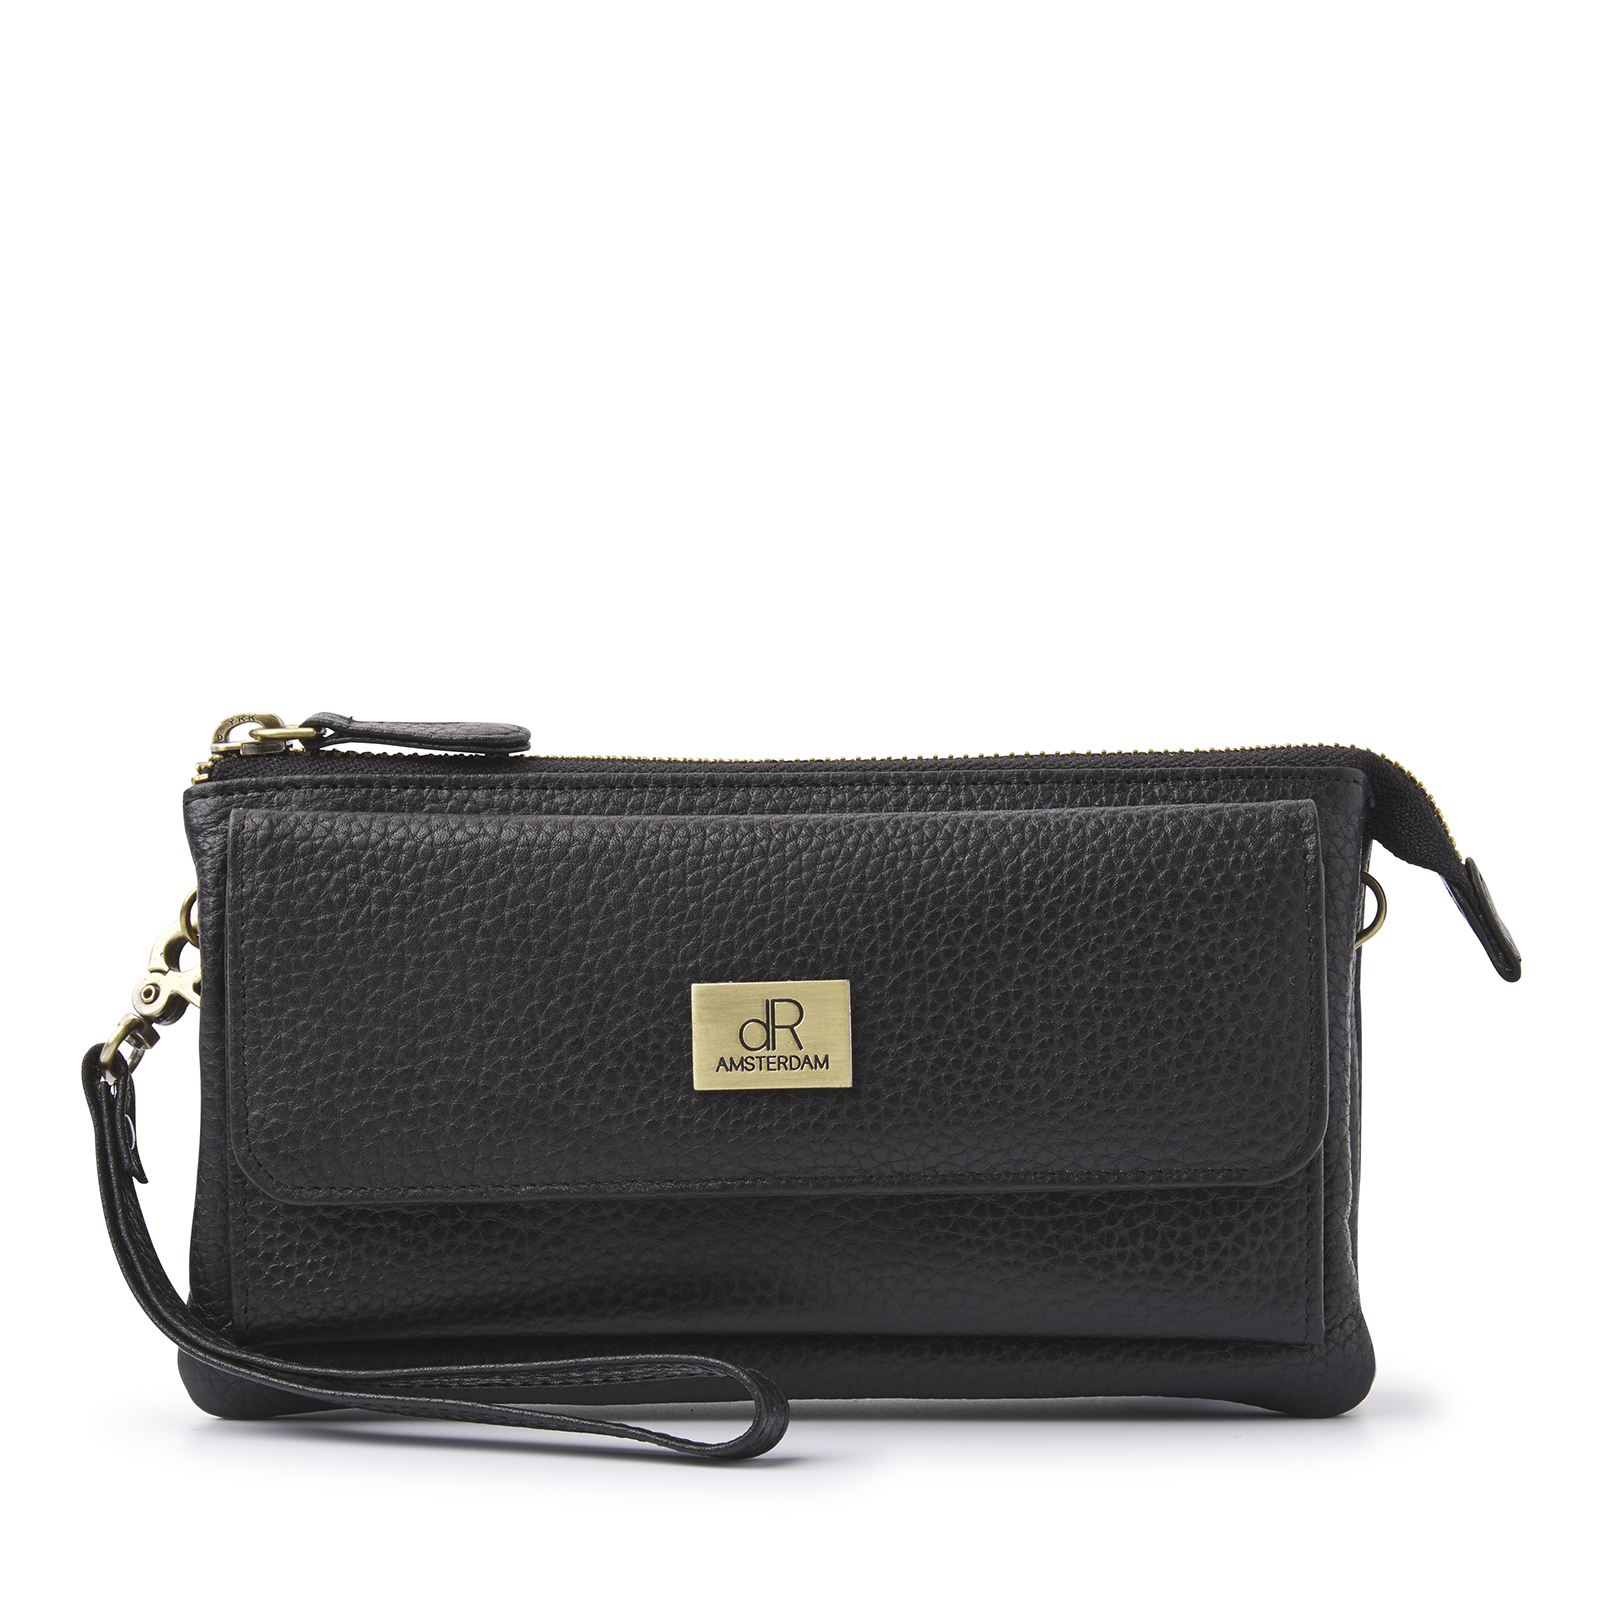 H.J. de Rooy Lederwaren 1103298 Clutch Black